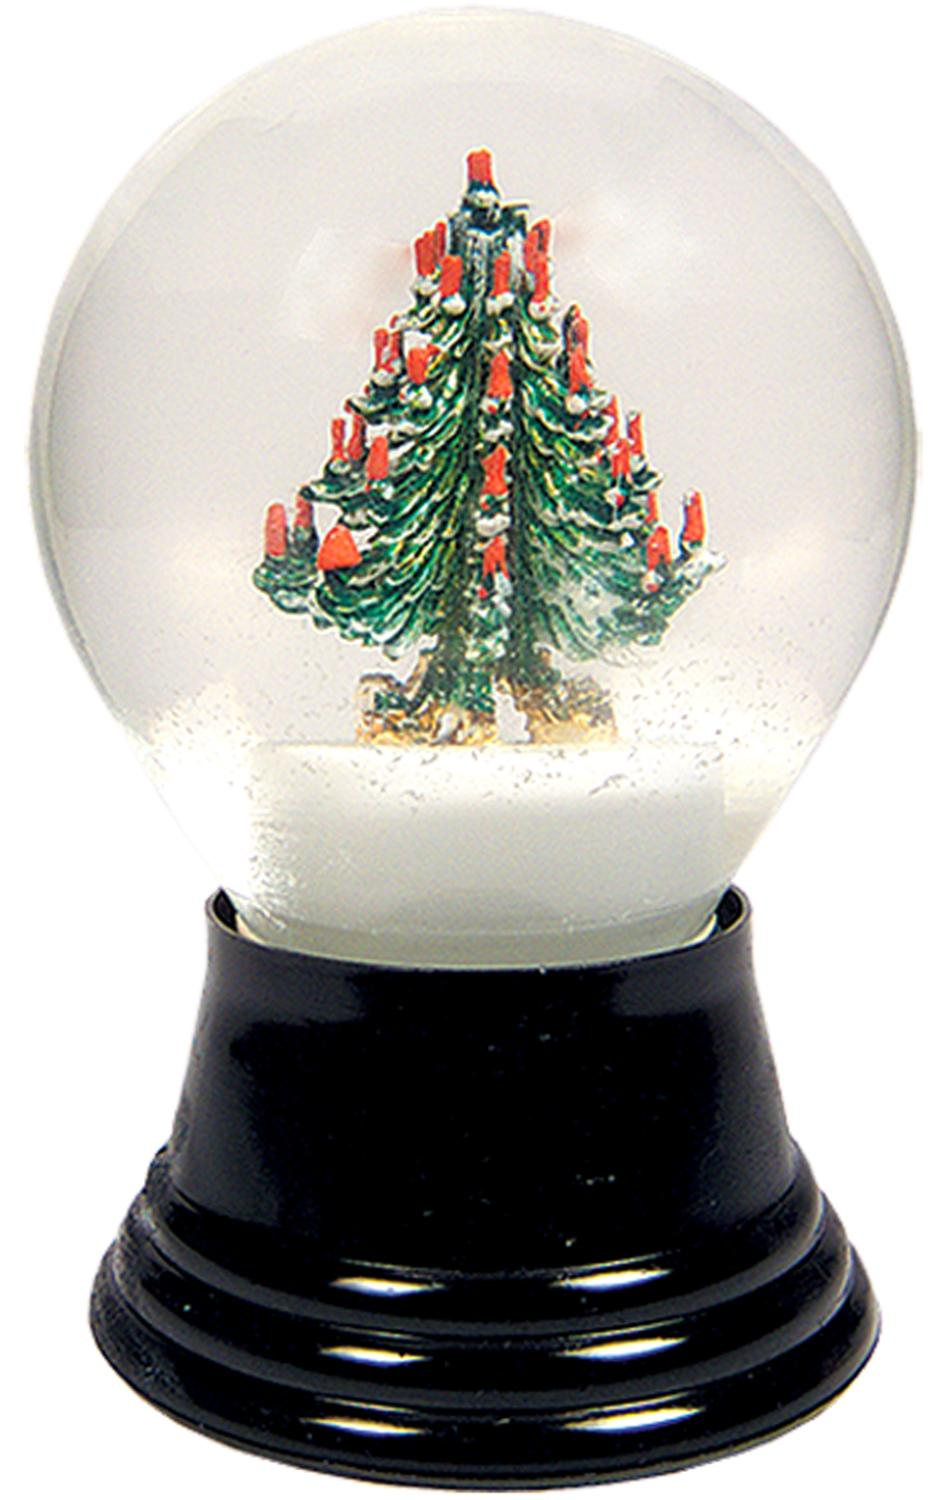 PR1404 - Perzy Snowglobe, Medium Christmas Tree - 5